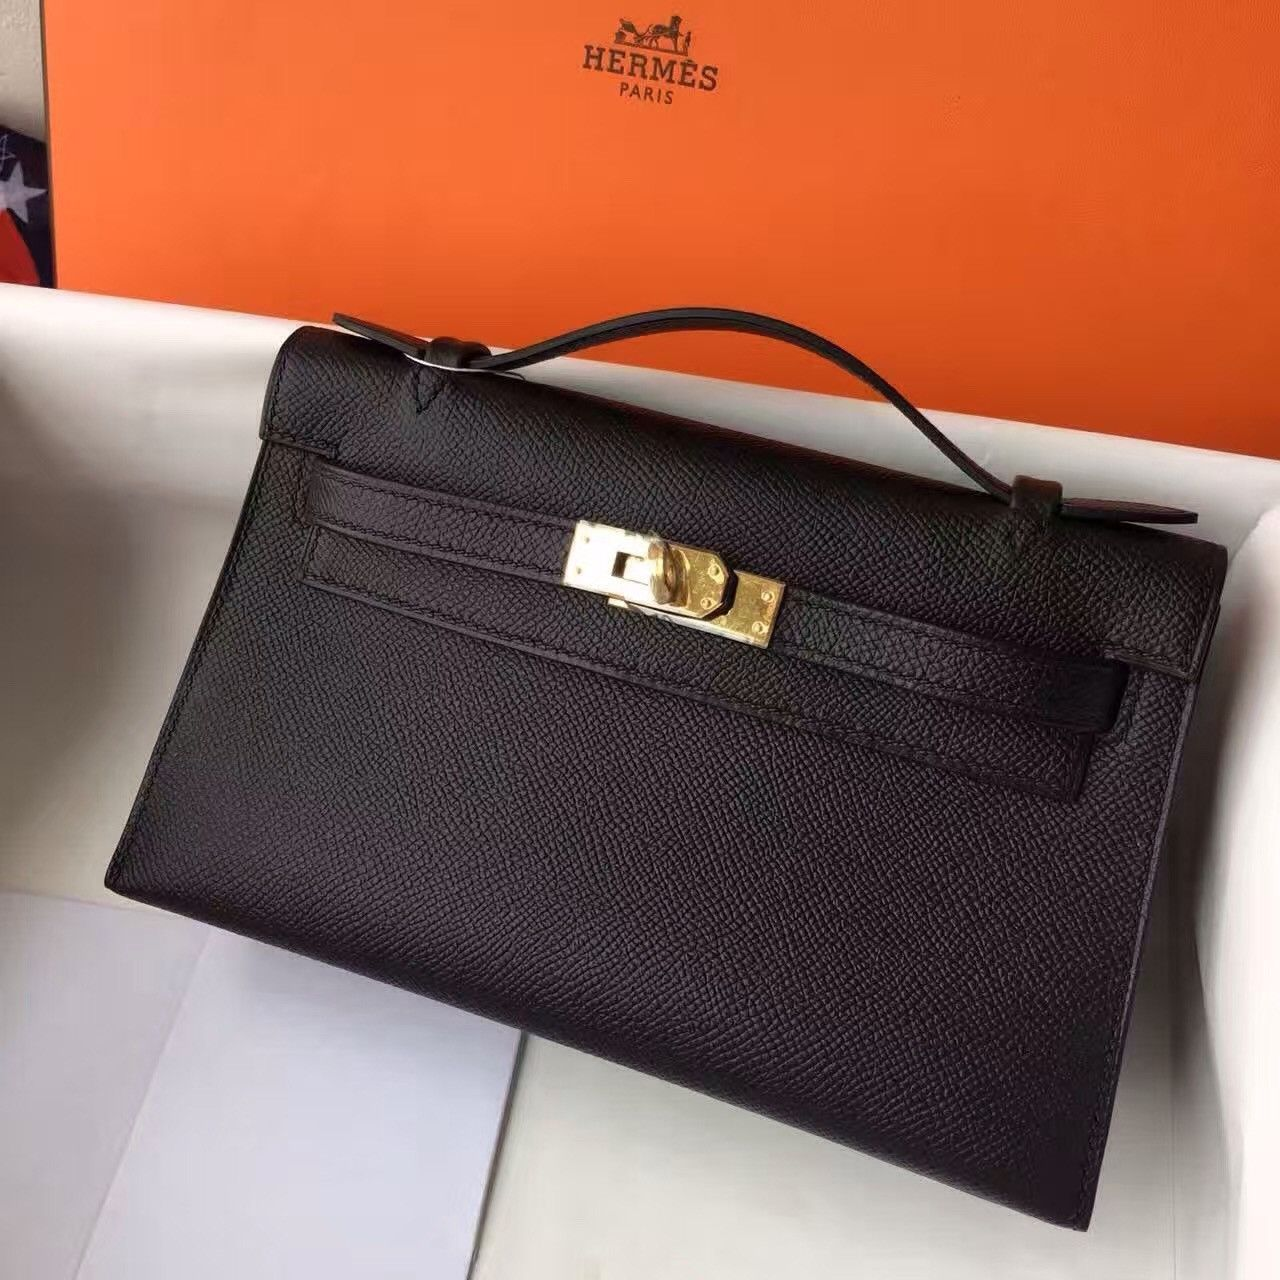 7fe0f14548 This Authentic Hermès Black Epsom Mini Kelly Pochette with Golden Hardware  is in pristine condition  never before carried with the protective plastic  intact ...